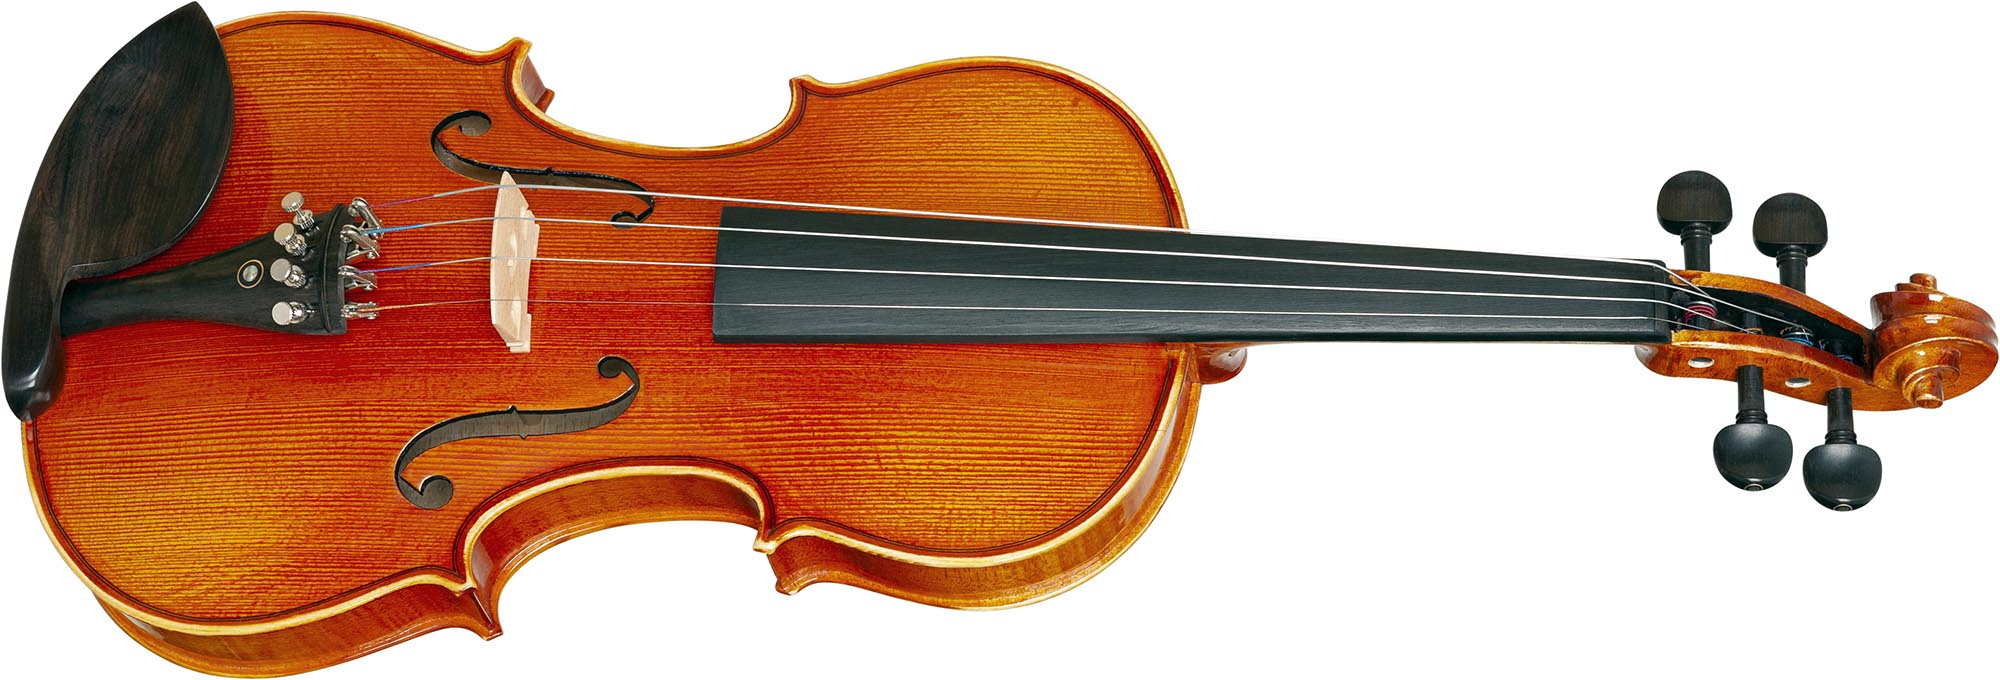 ve145 violino eagle ve145 visao frontal